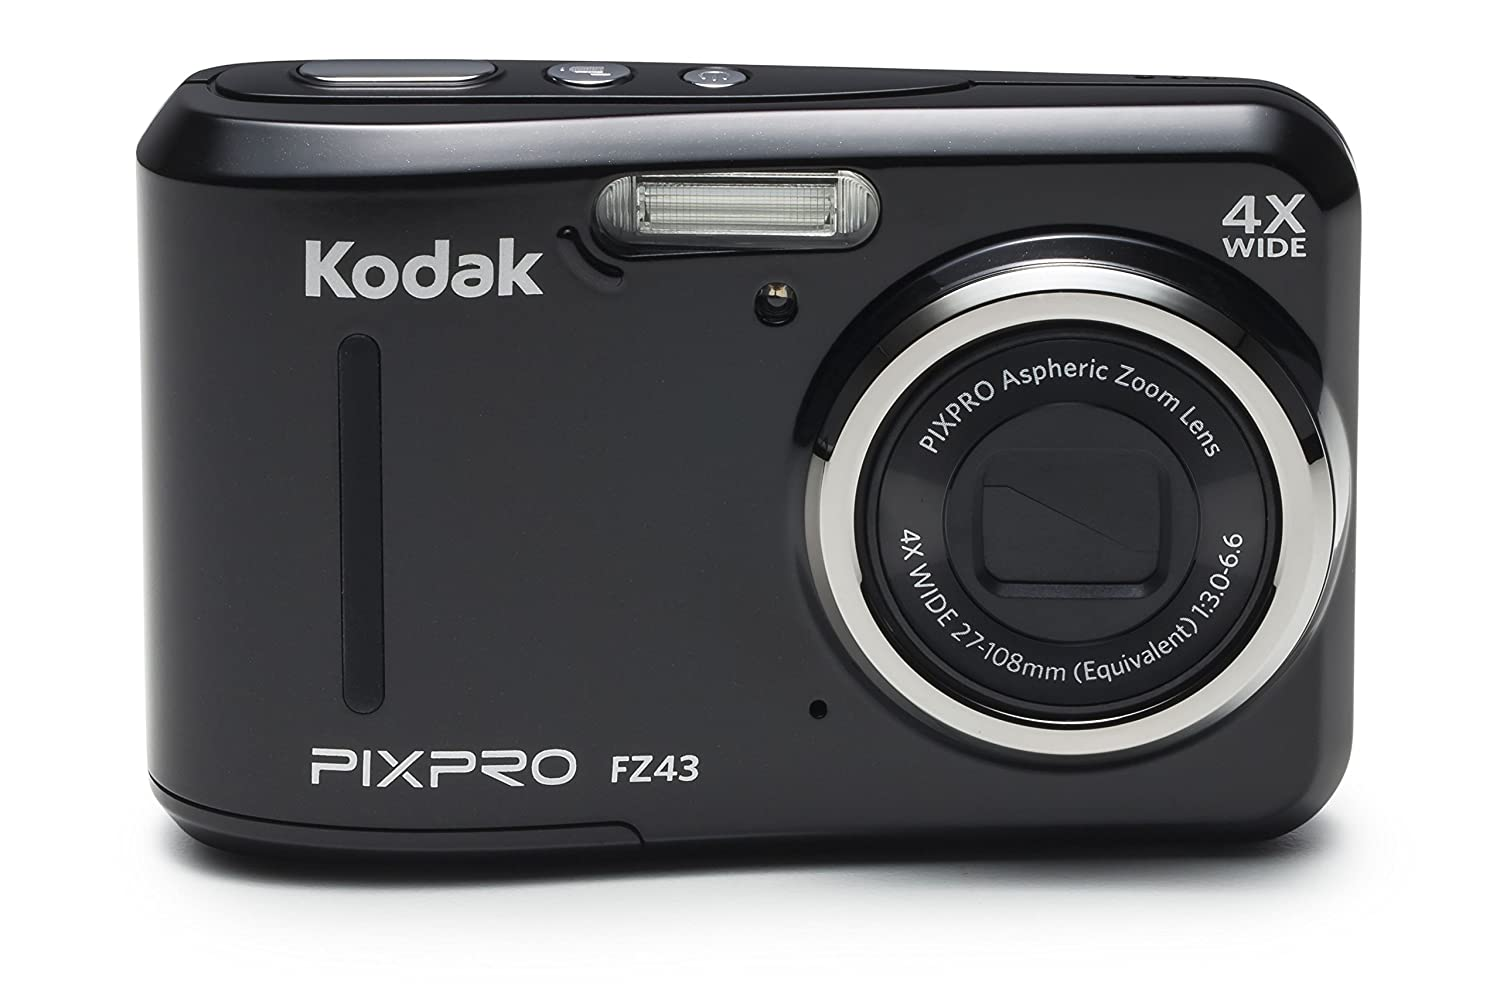 "Kodak Pixpro Friendly Zoom Fz43 16 Mp Digital Camera With 4 X Optical Zoom And 2.7"" Lcd Screen (Black) by Kodak"